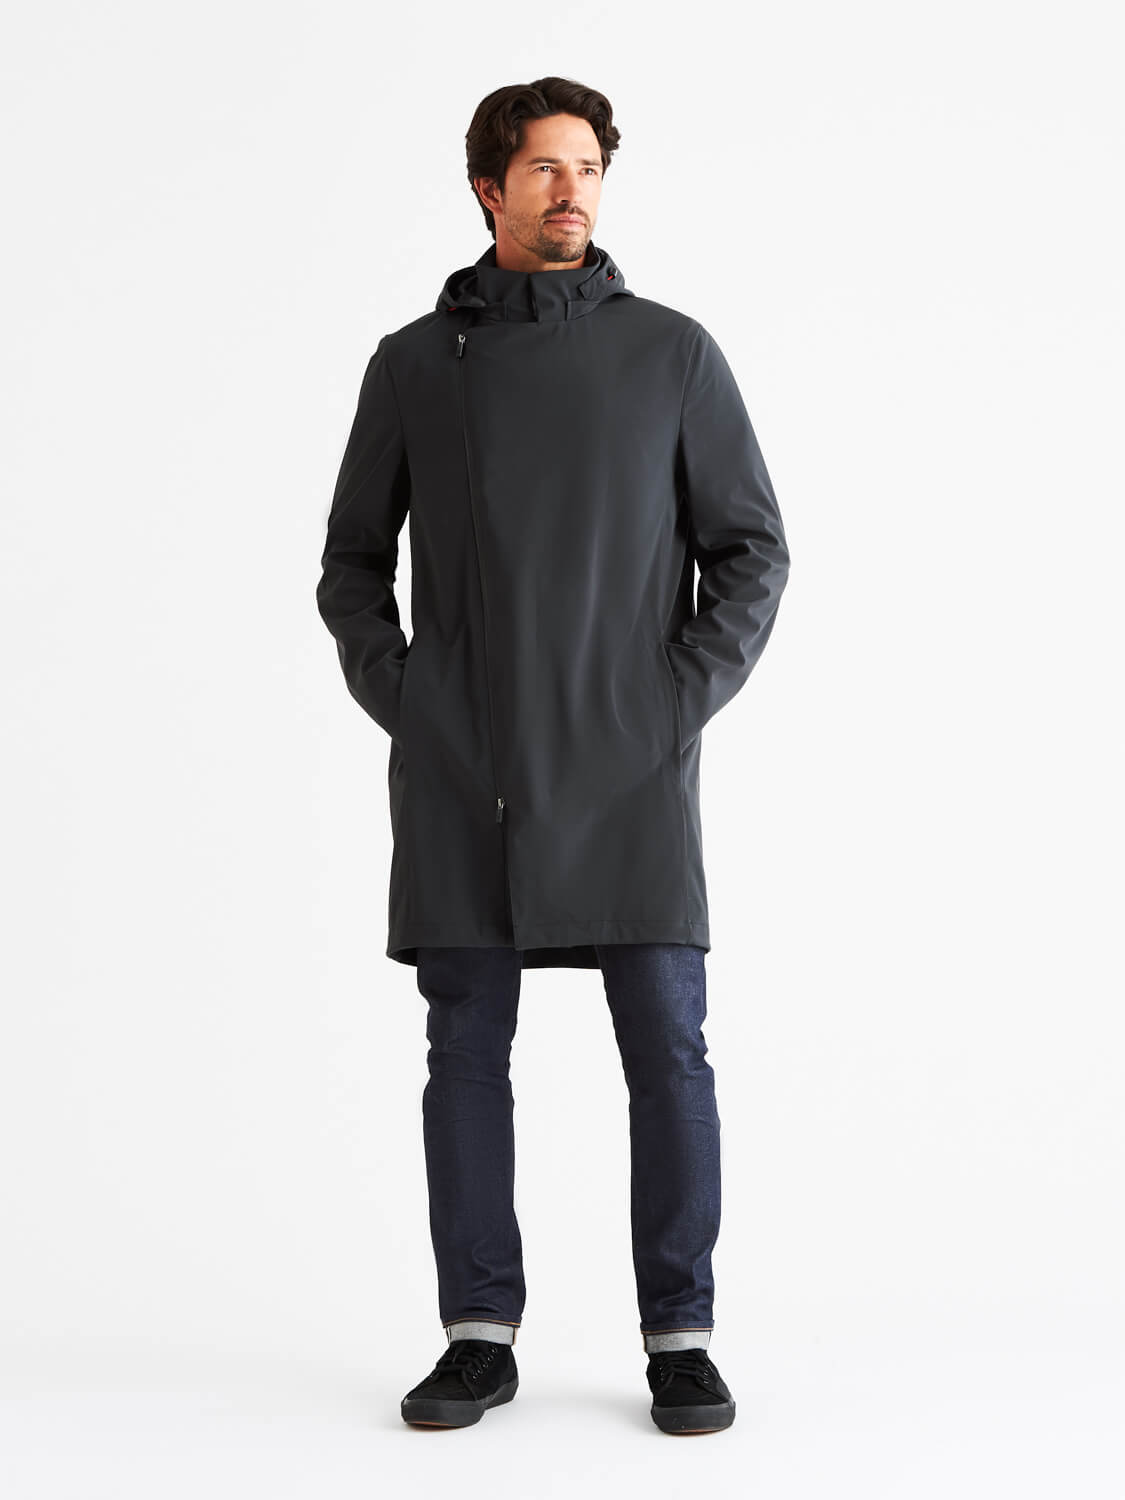 Aphix 3-in-1 Parka